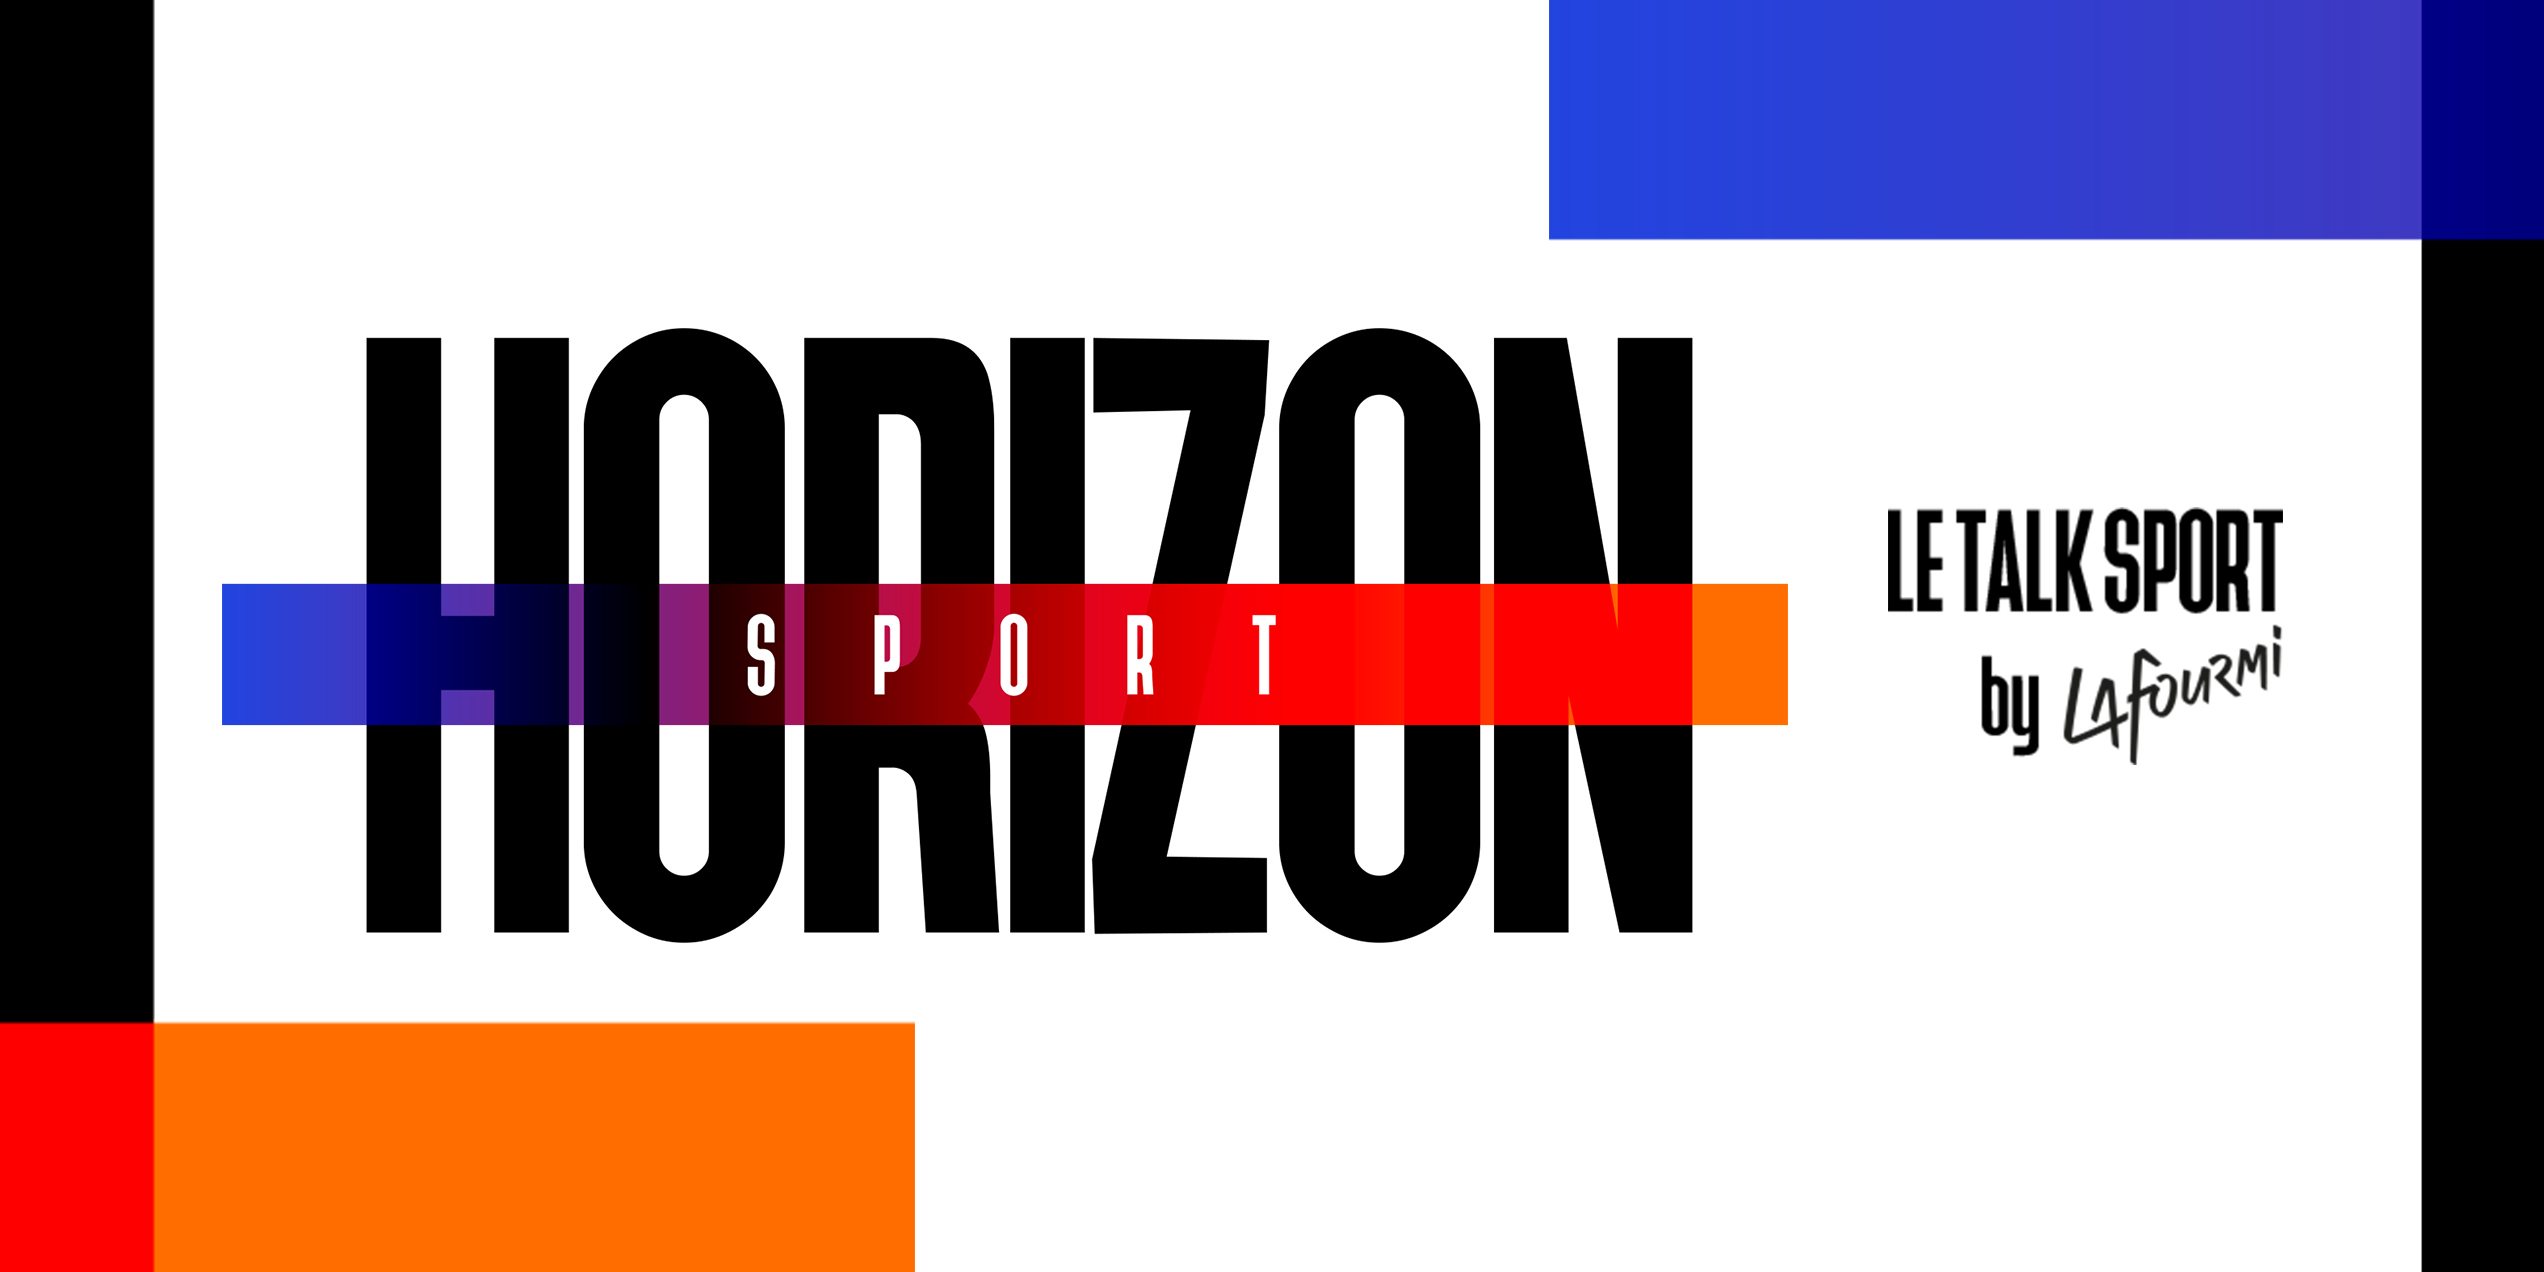 visuel_ouverture_activation_actualite_news_strategie_lancement_horizon_sport_nouveau_talk_podcast_avril_2020_lafourmi